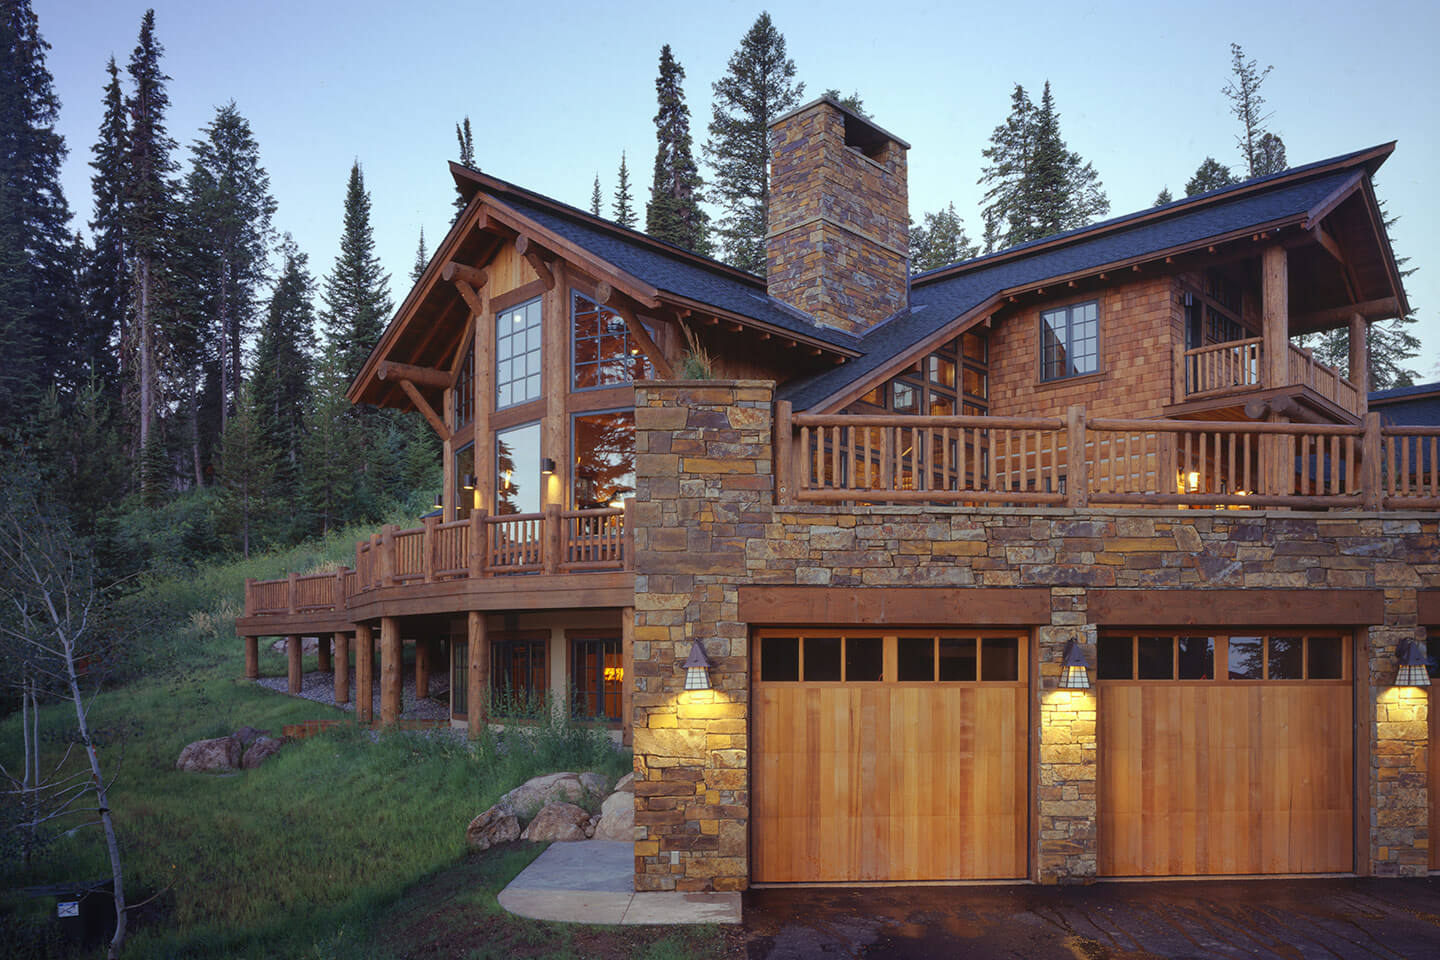 Log home exterior at twilight